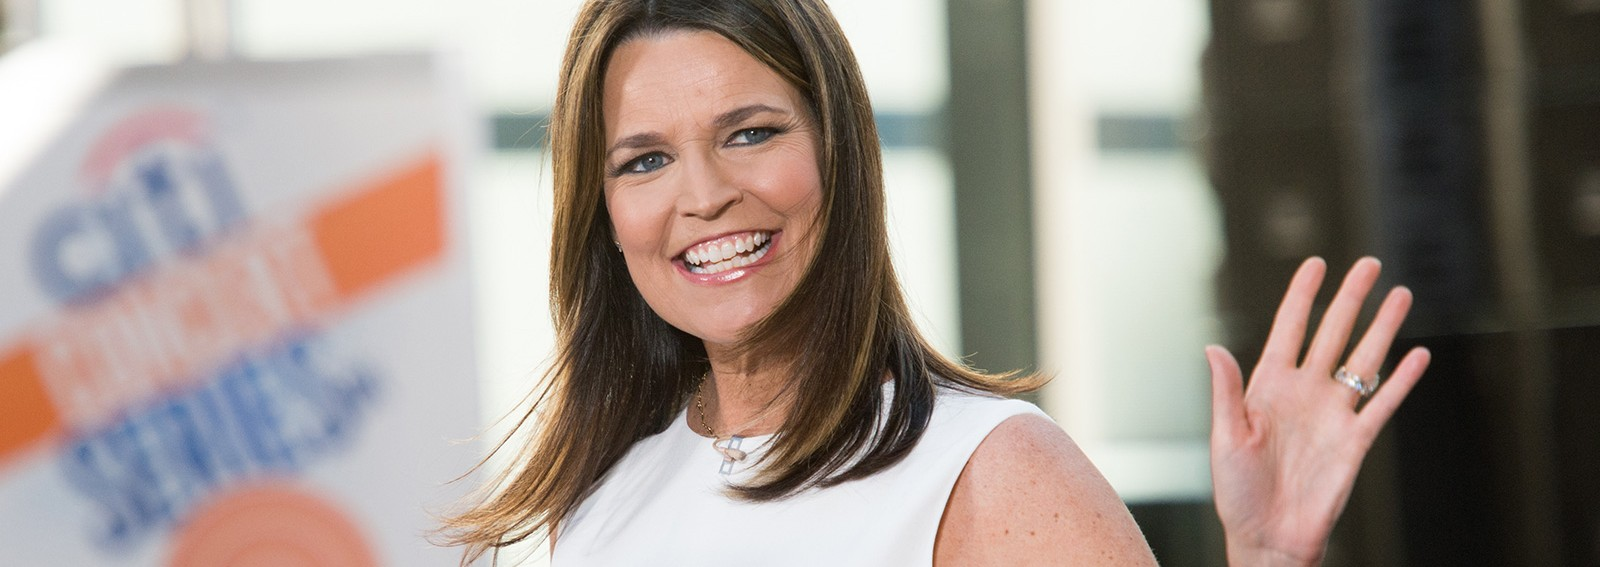 Savannah Guthrie opens up about her second pregnancy